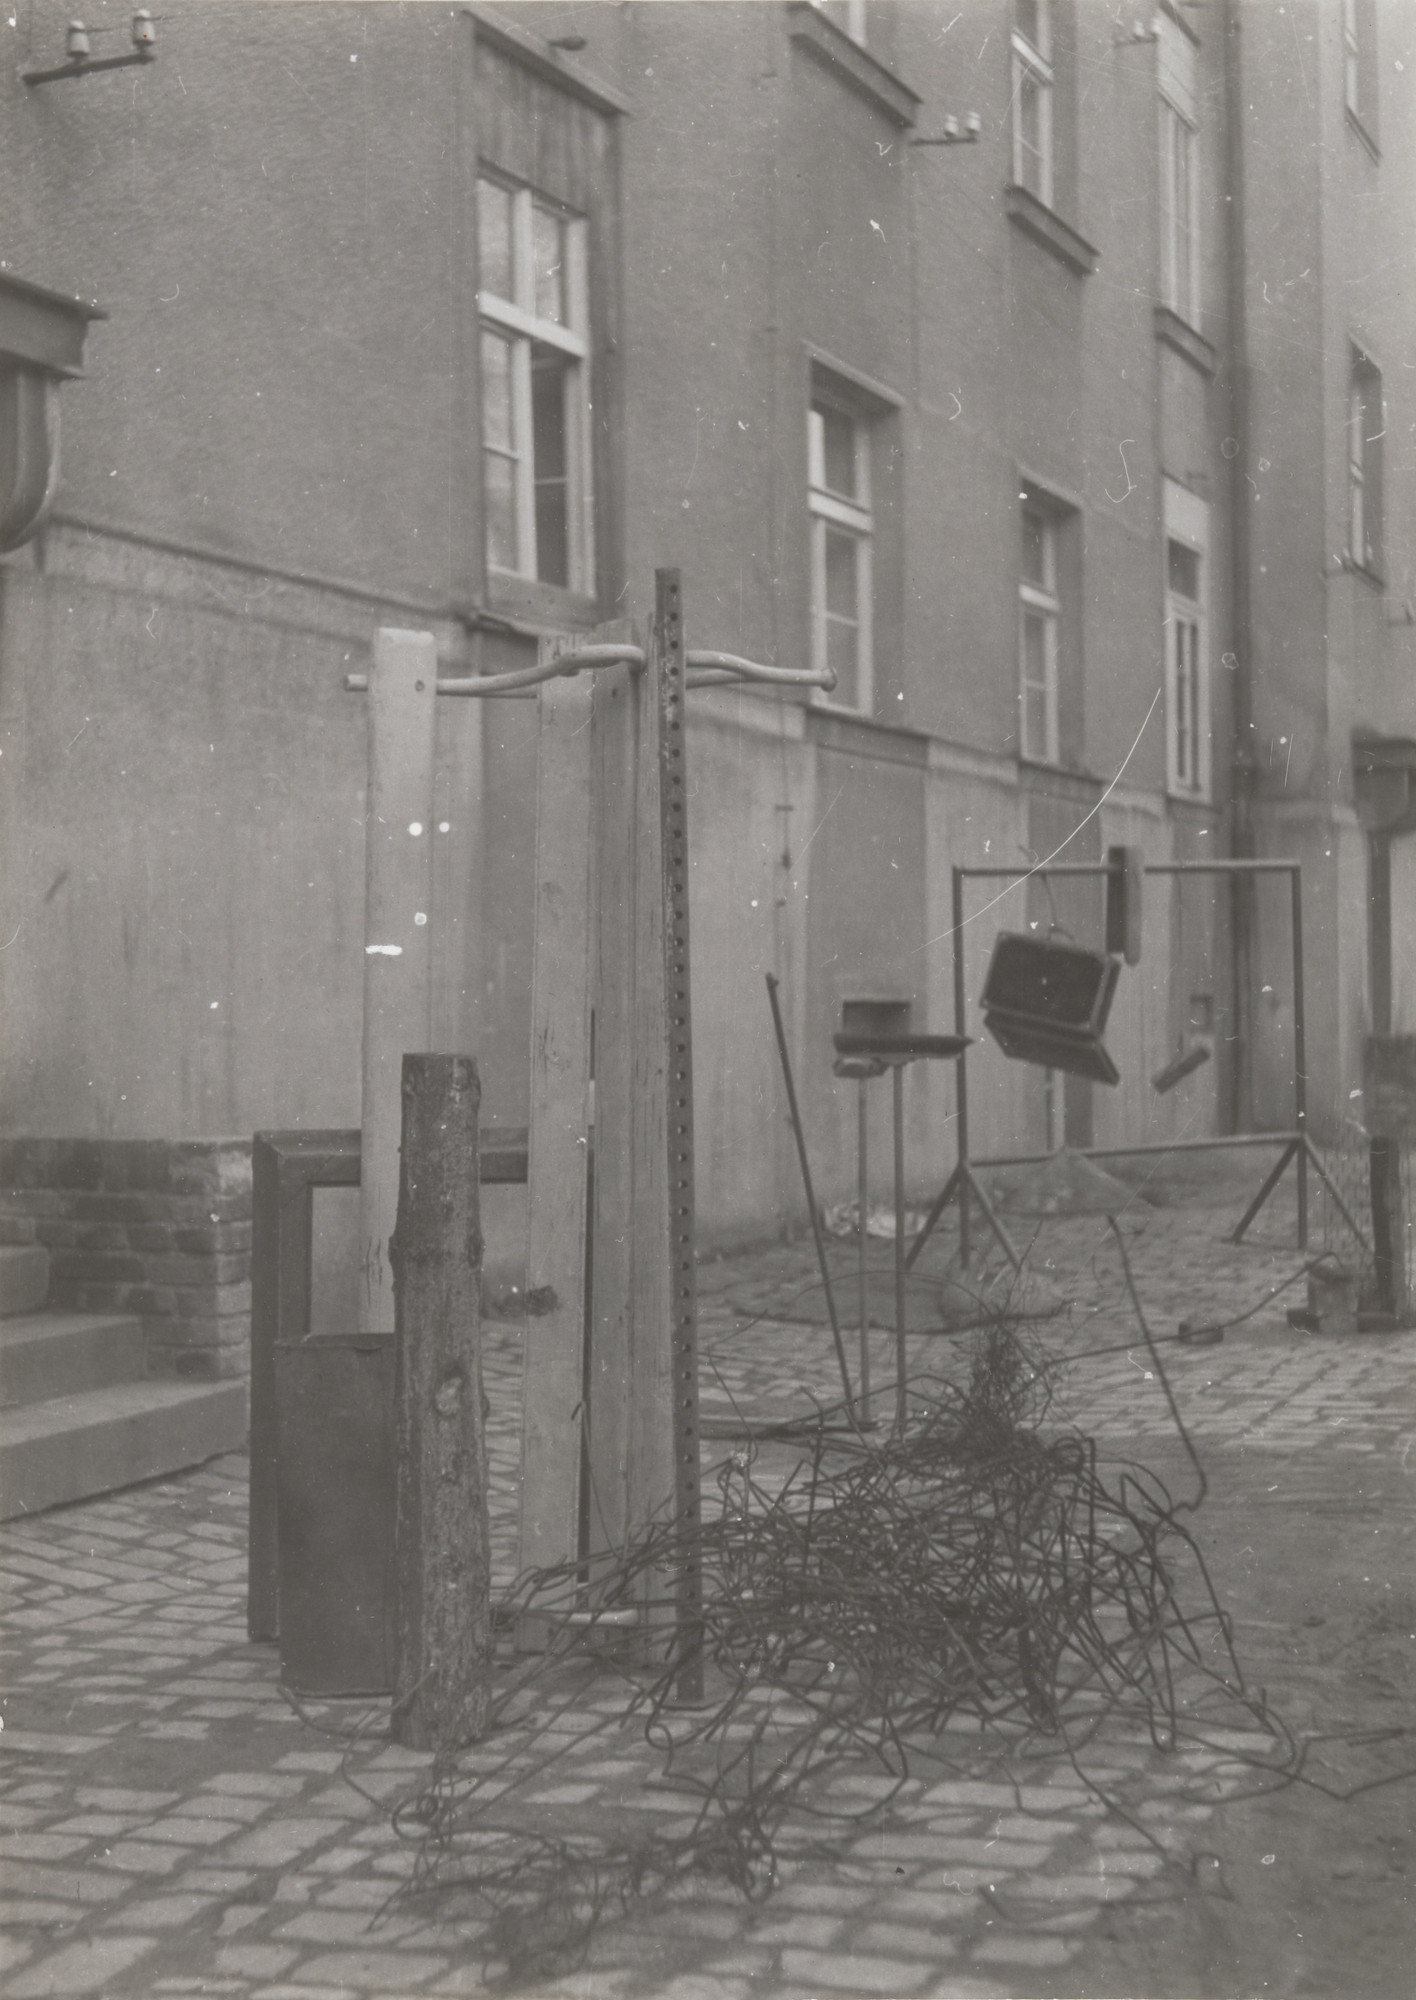 Milan Knížák. Environment in a Back-Yard from Performance Files. 1963